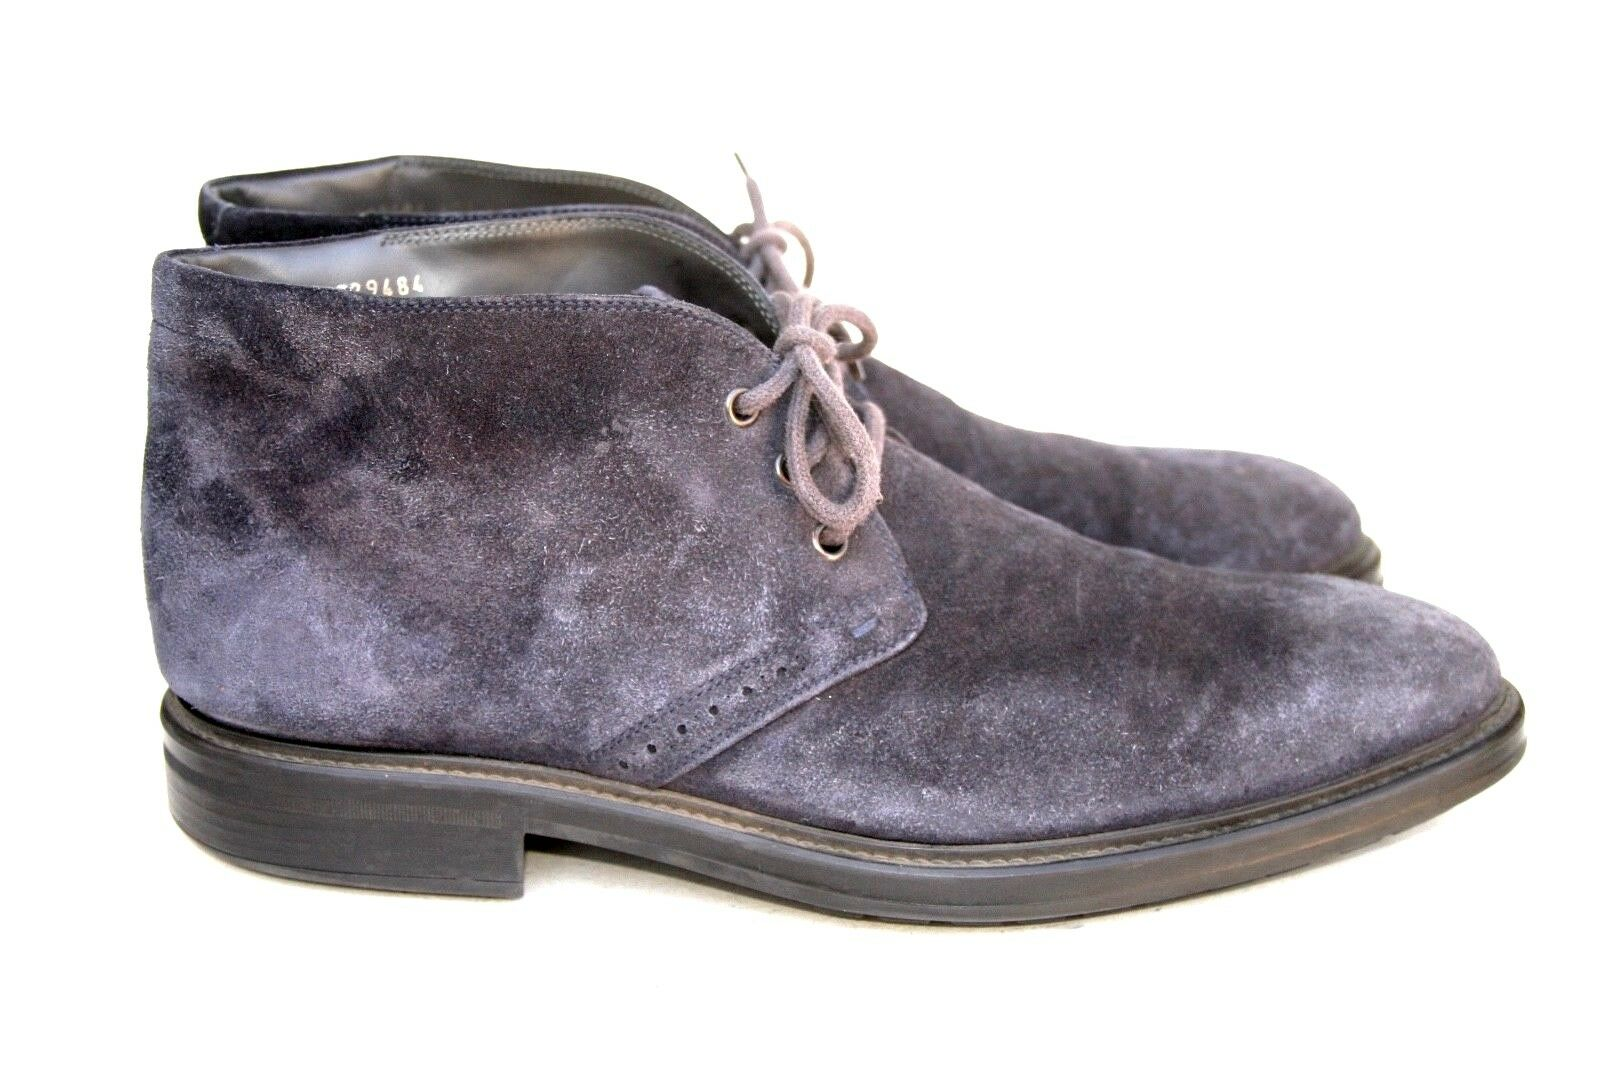 Hugo Boss  bluee Suede Leather Ankle Chukka Boots Size Men's 46 = US 13